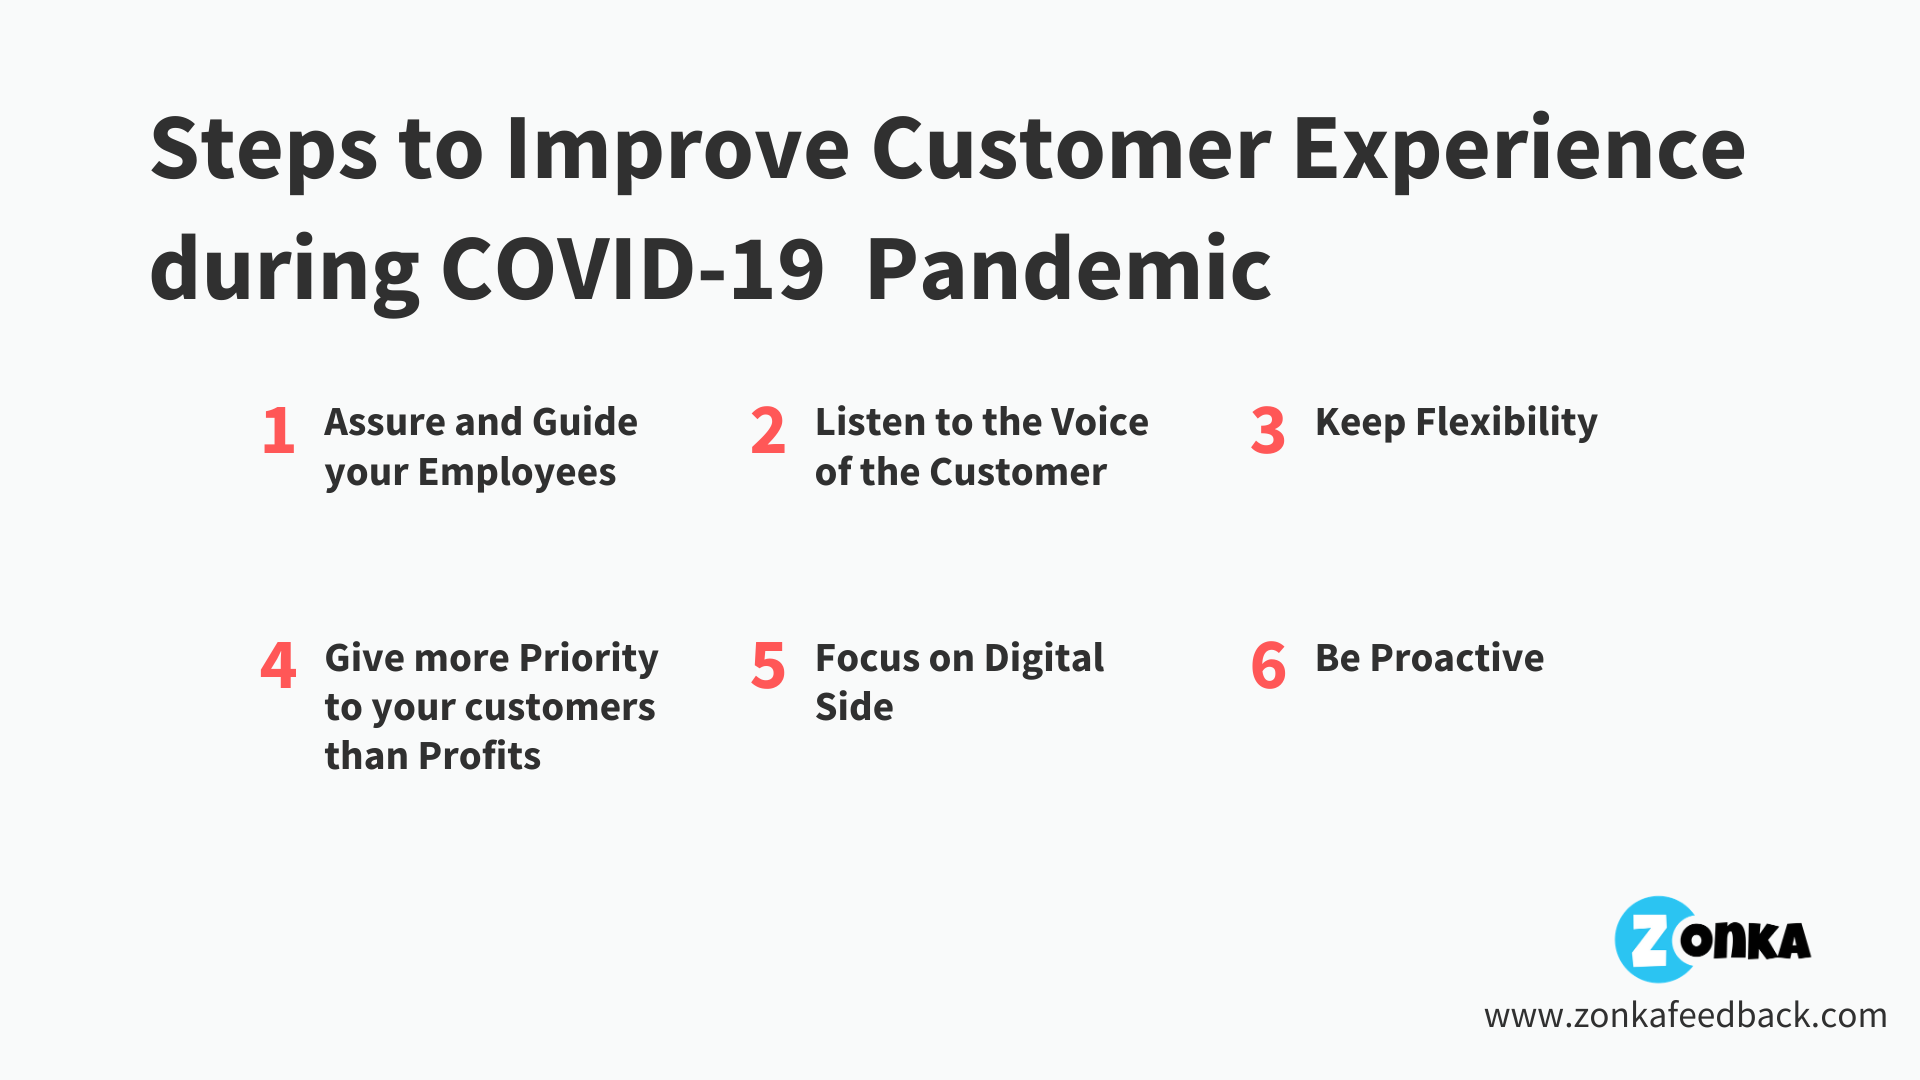 Steps to Improve Customer Experience in the middle of COVID-19 pandemic